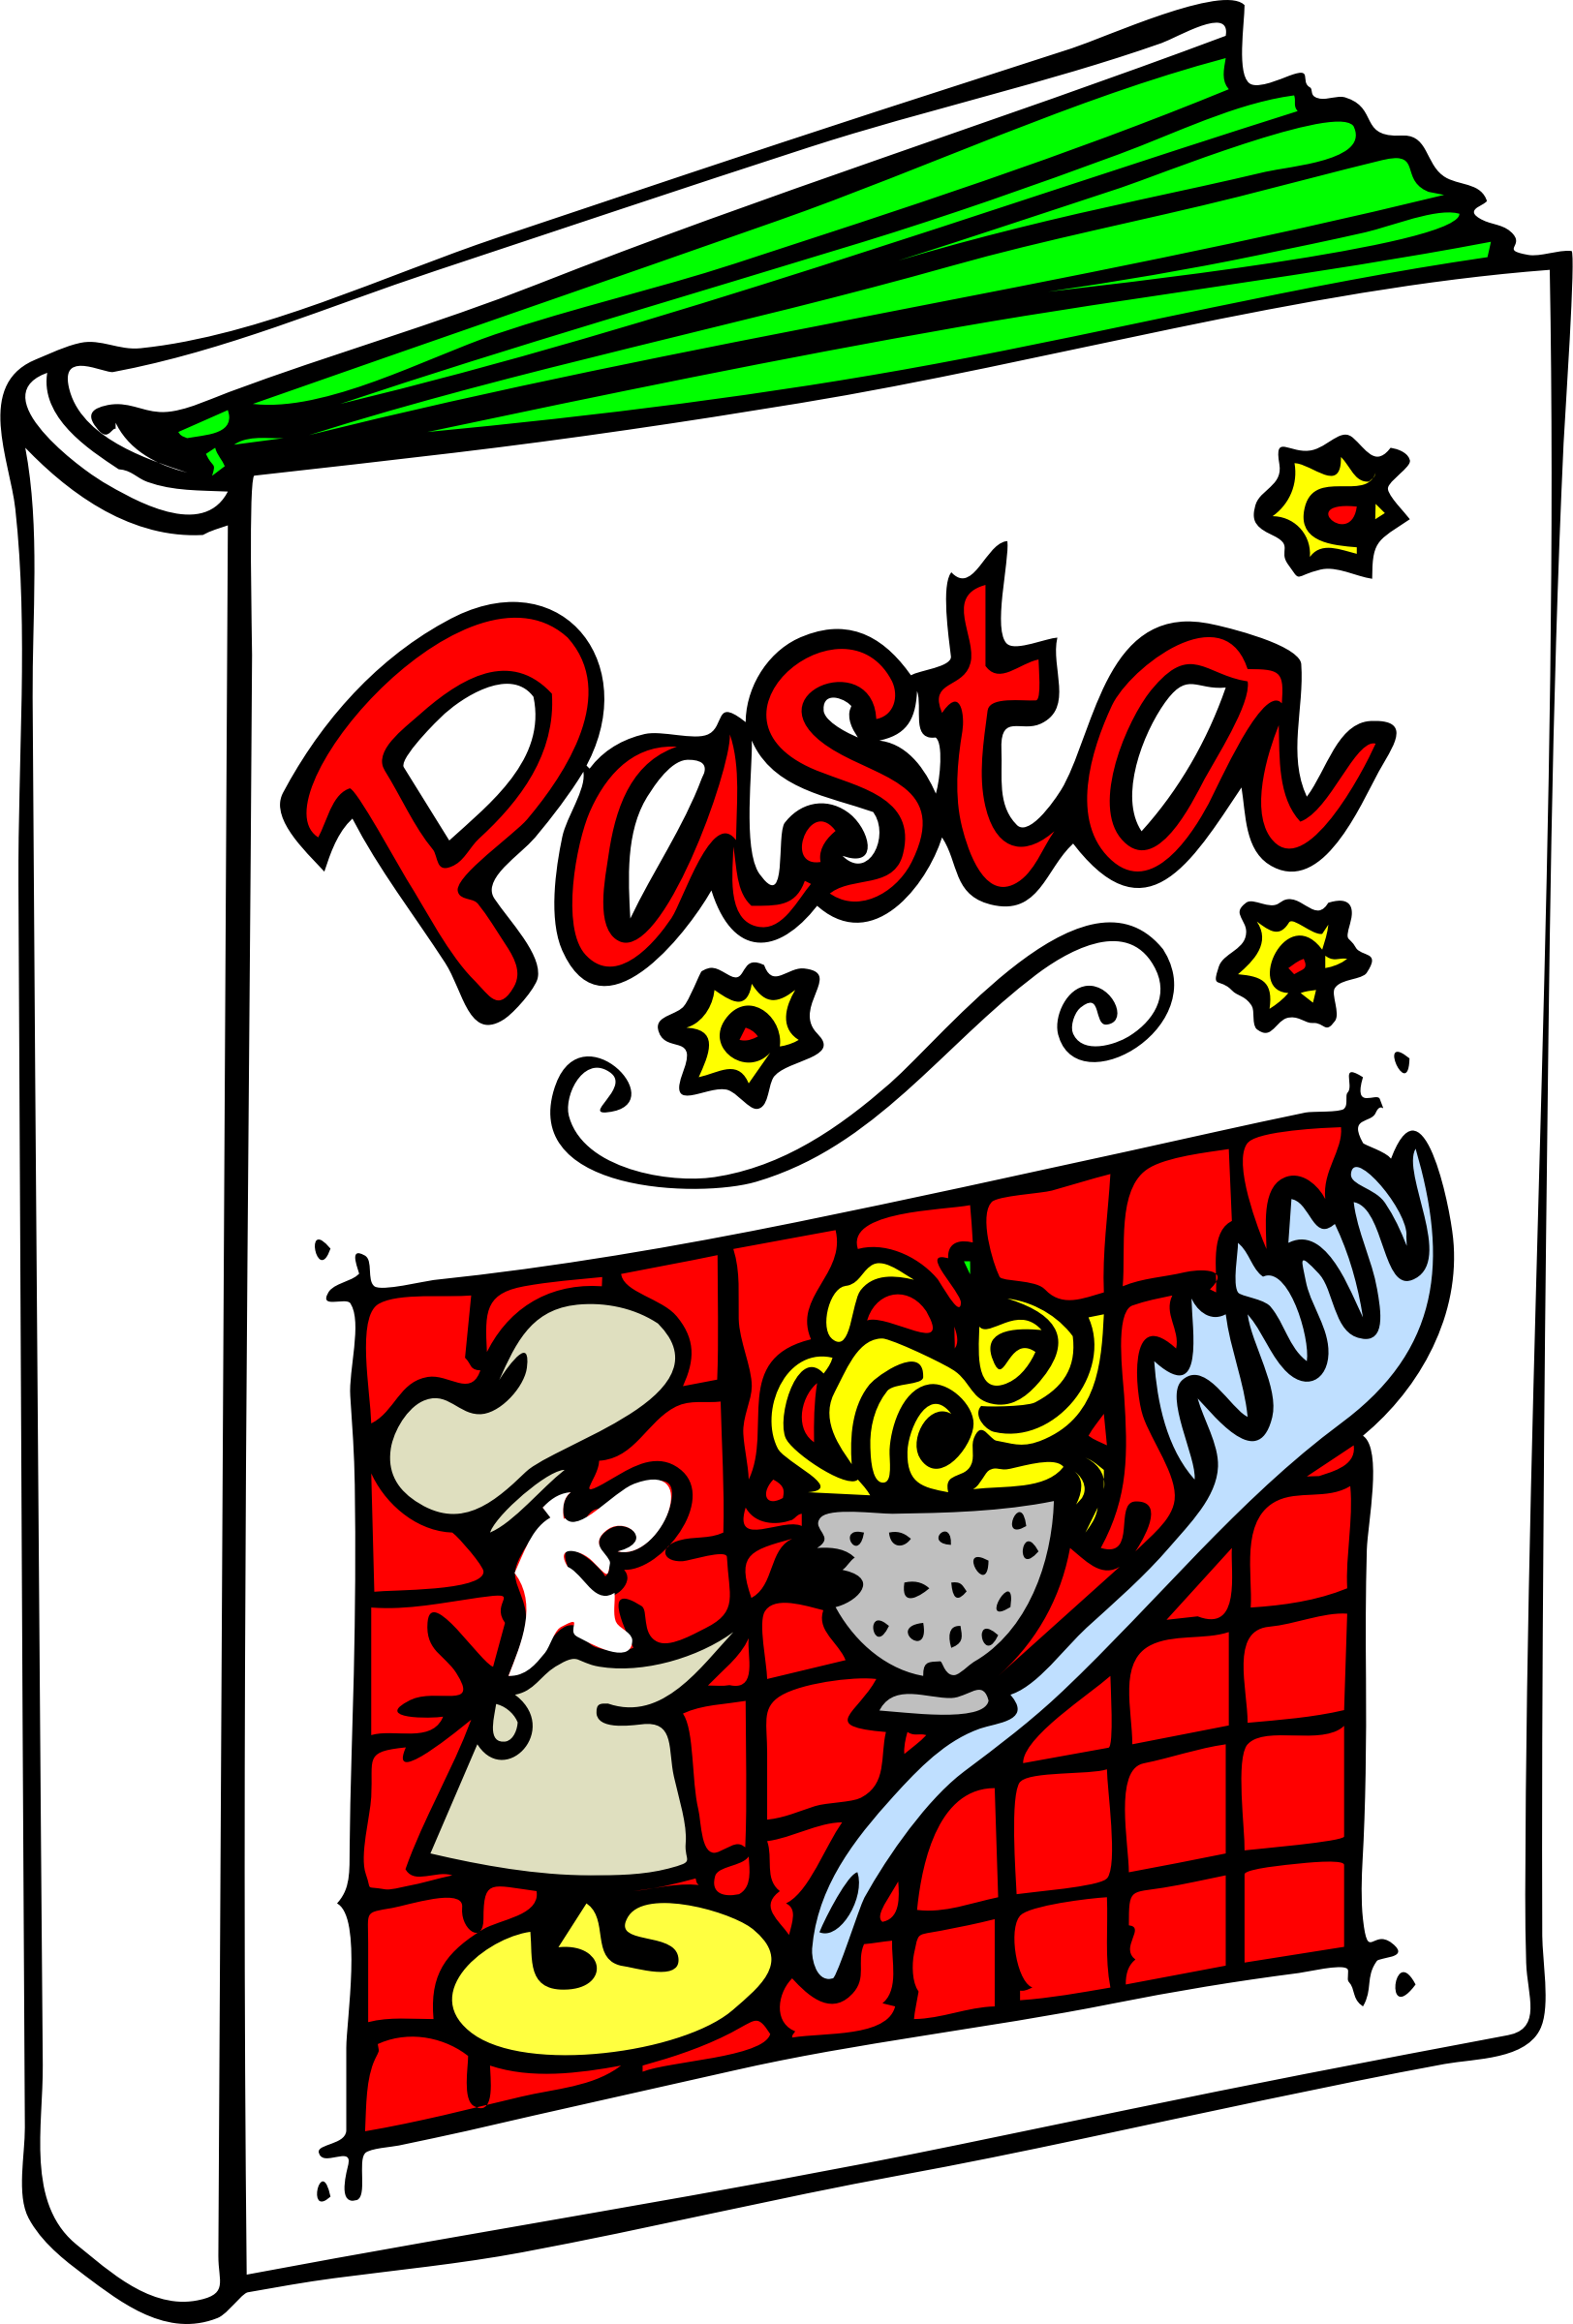 Cookbook clipart cooking book. Pasta big image png